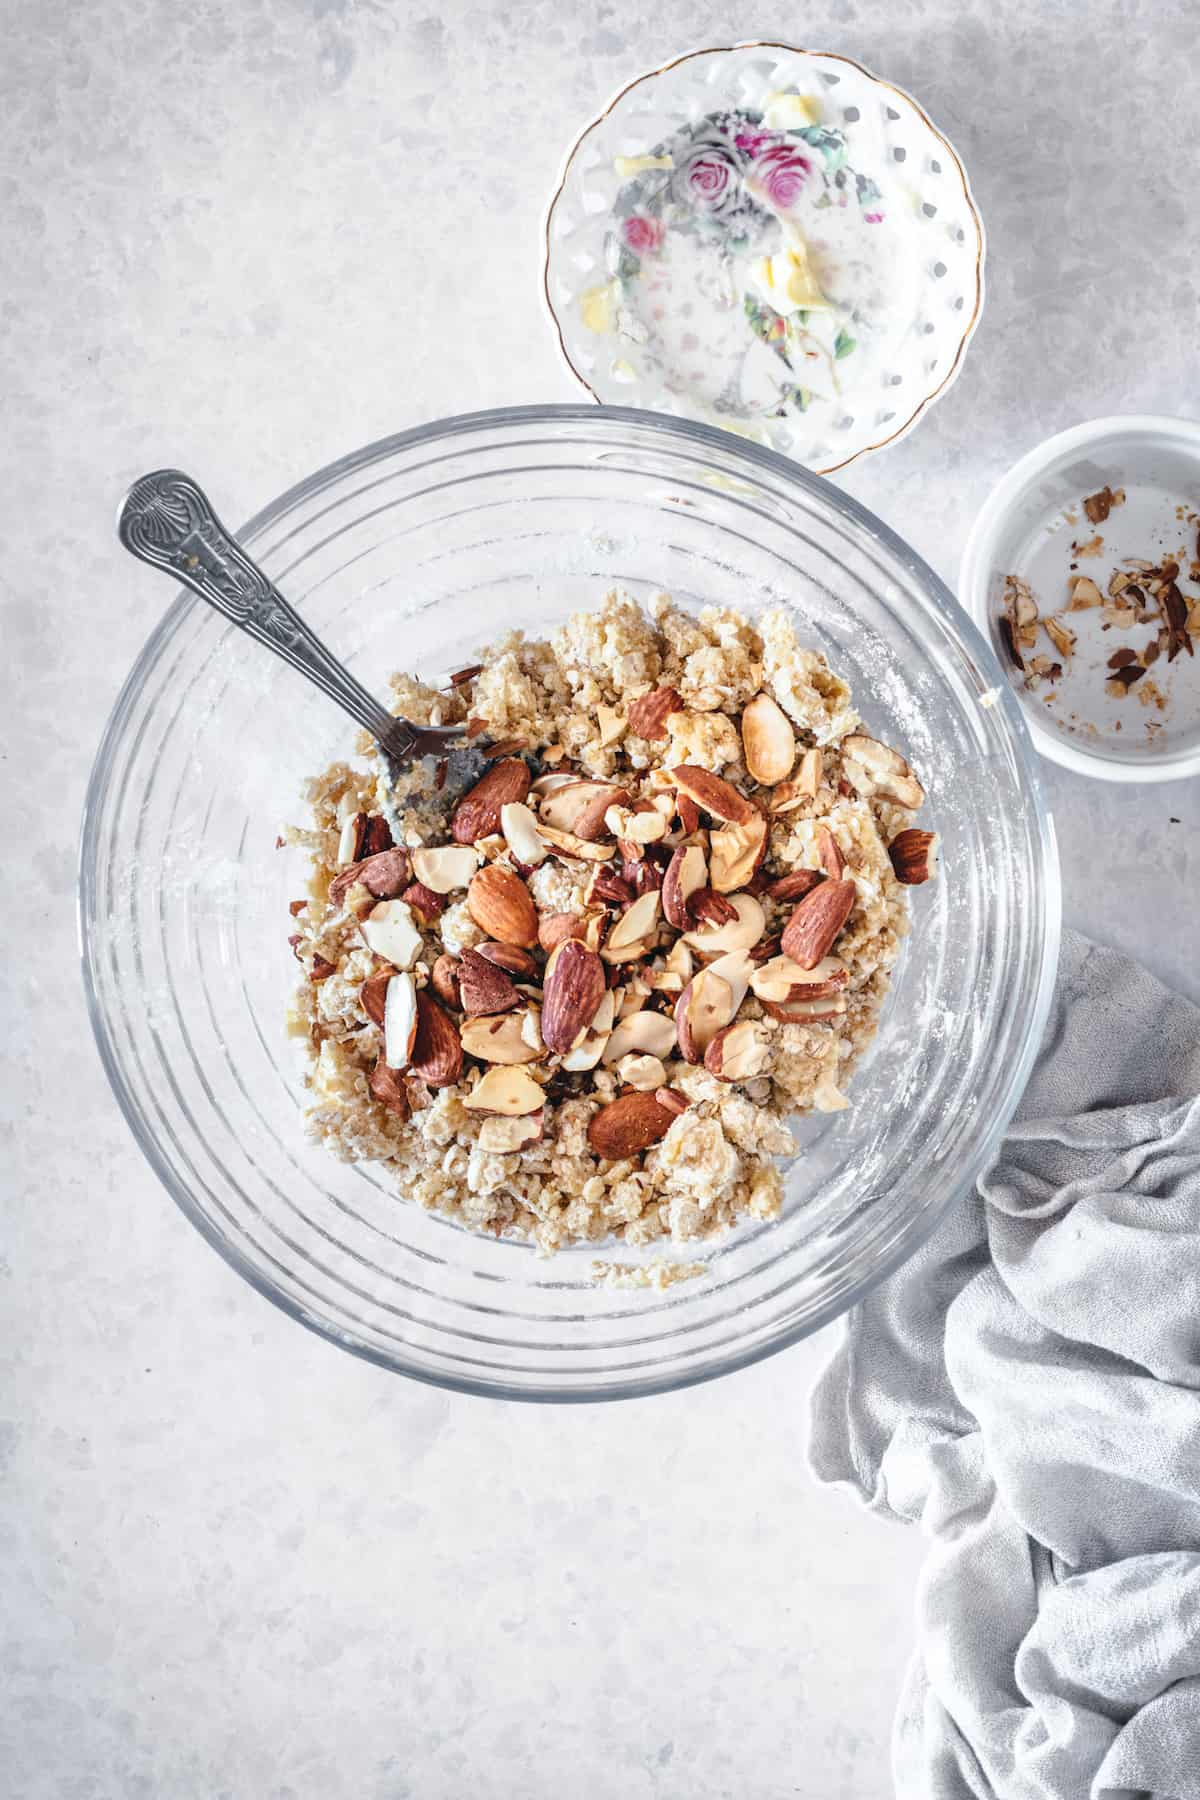 Almond crisp topping ingredients in a mixing bowl